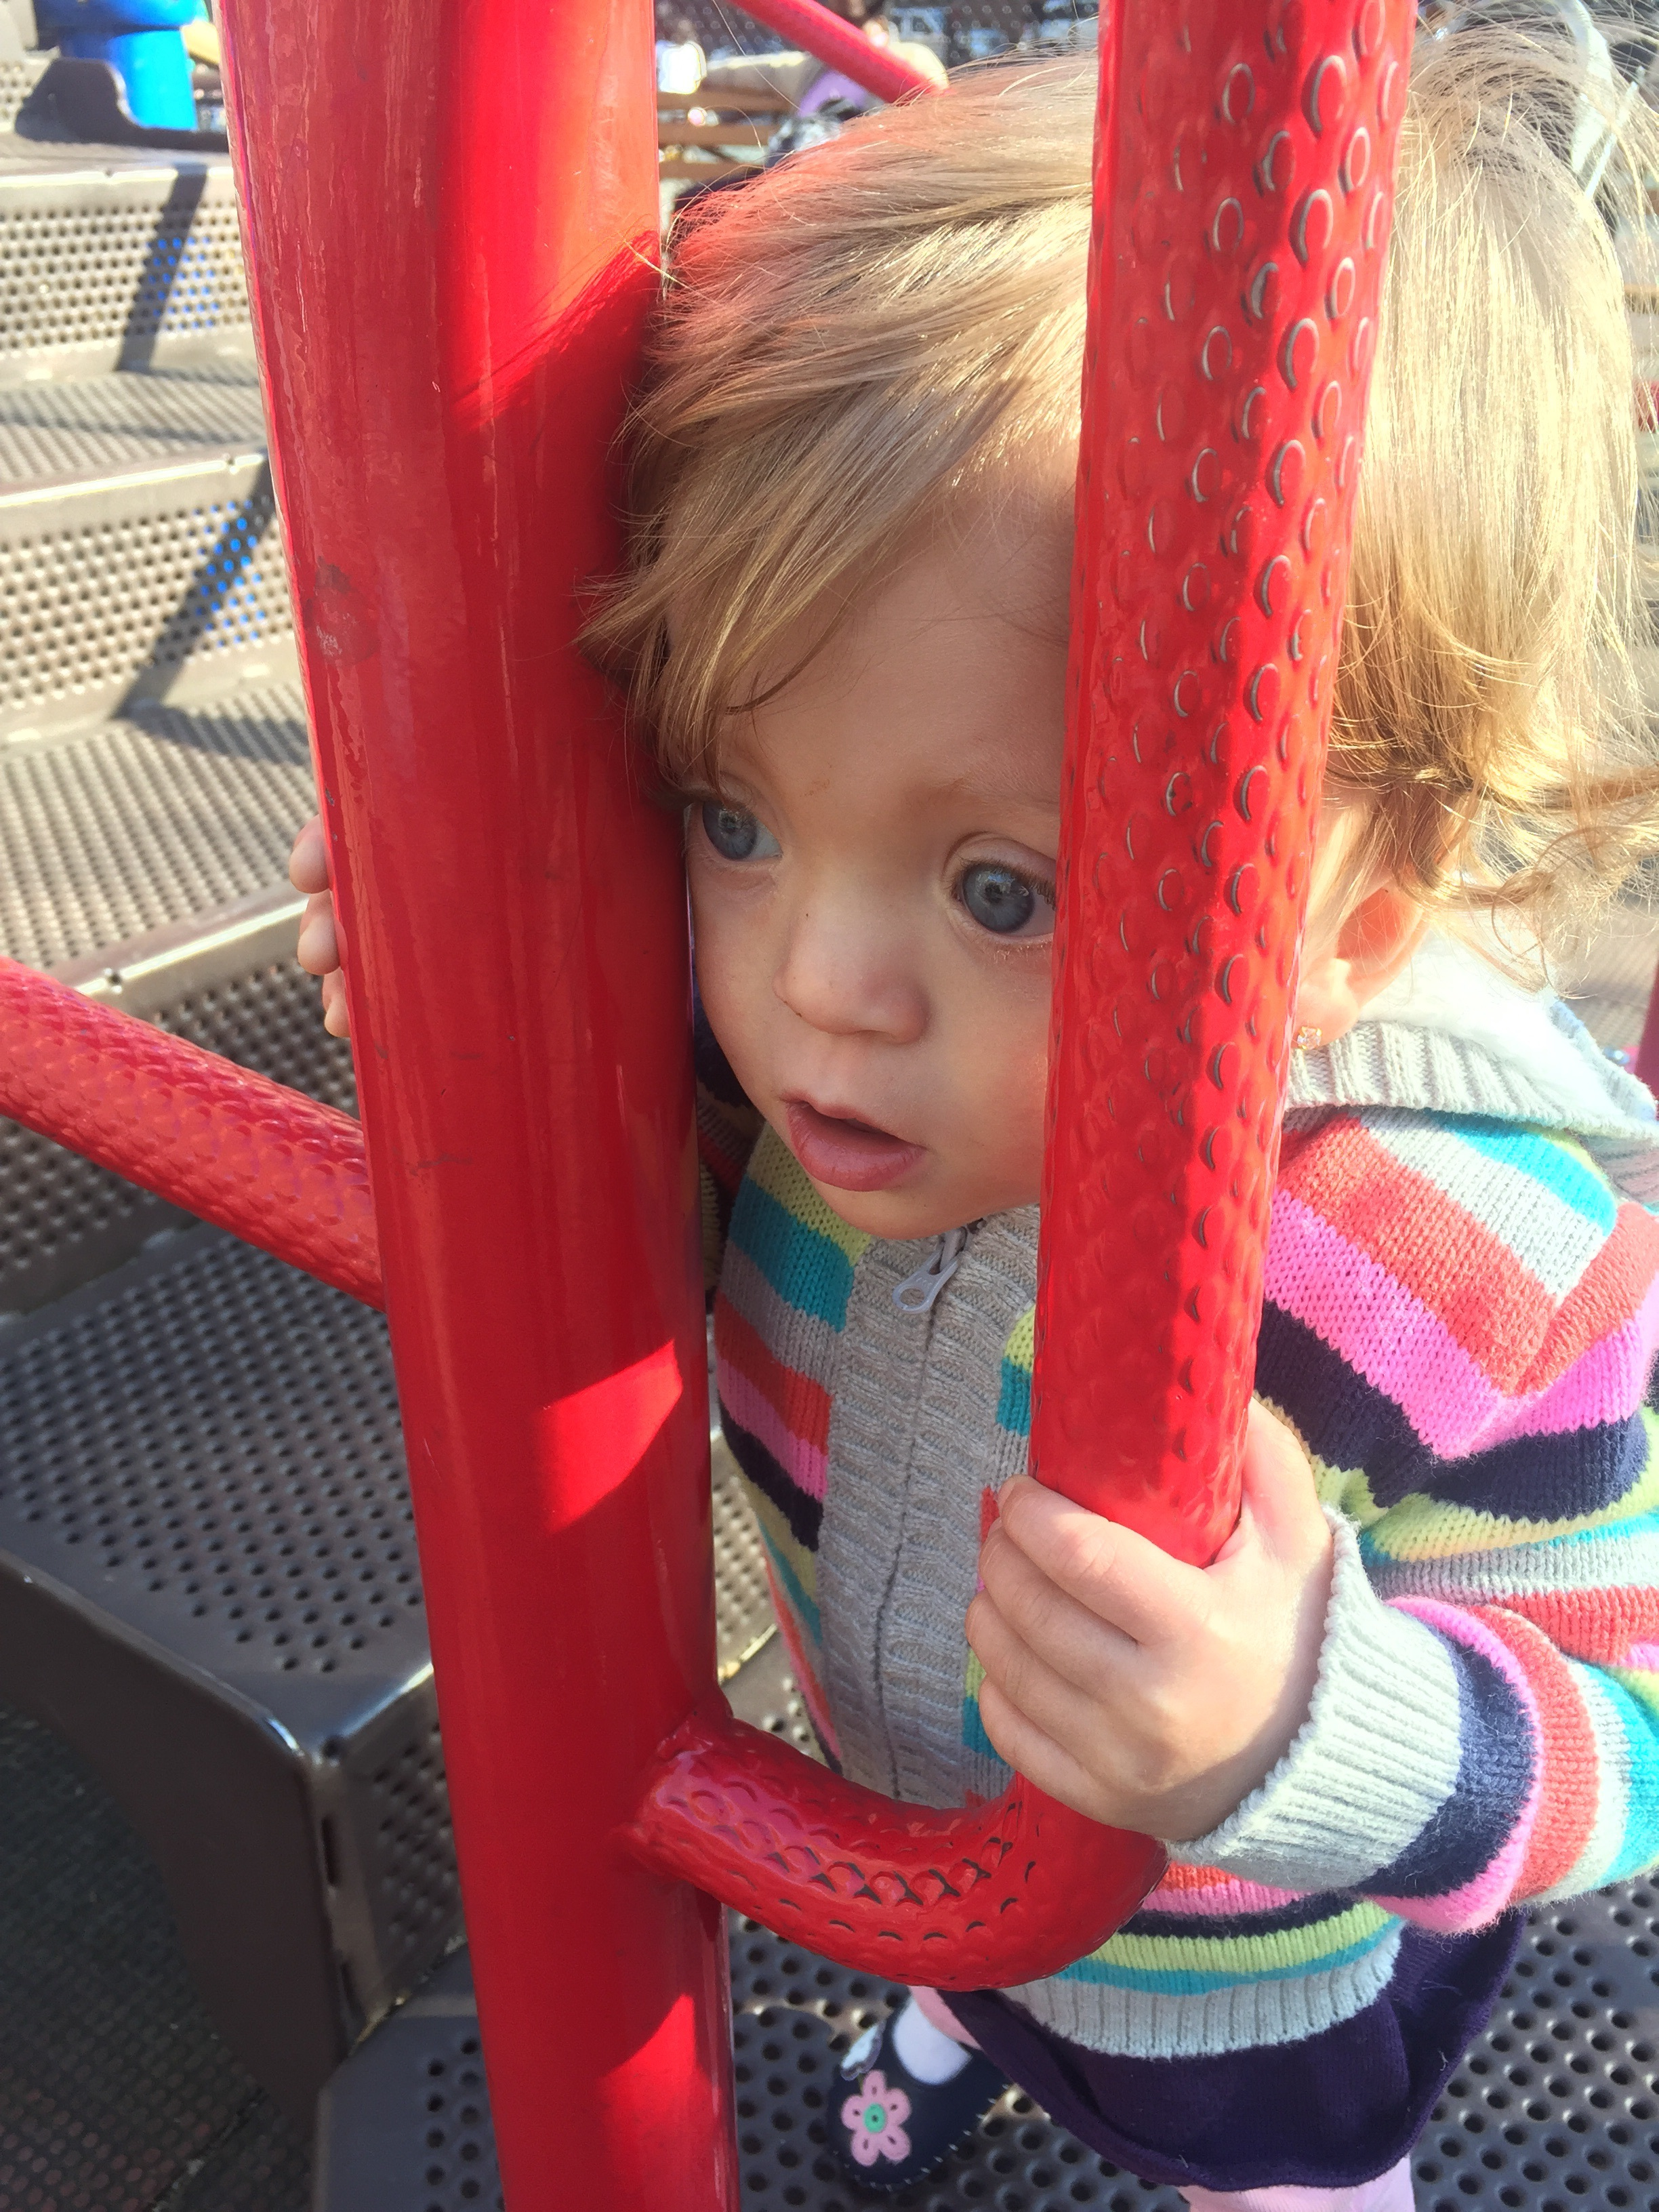 At the playground, just taking it all in.